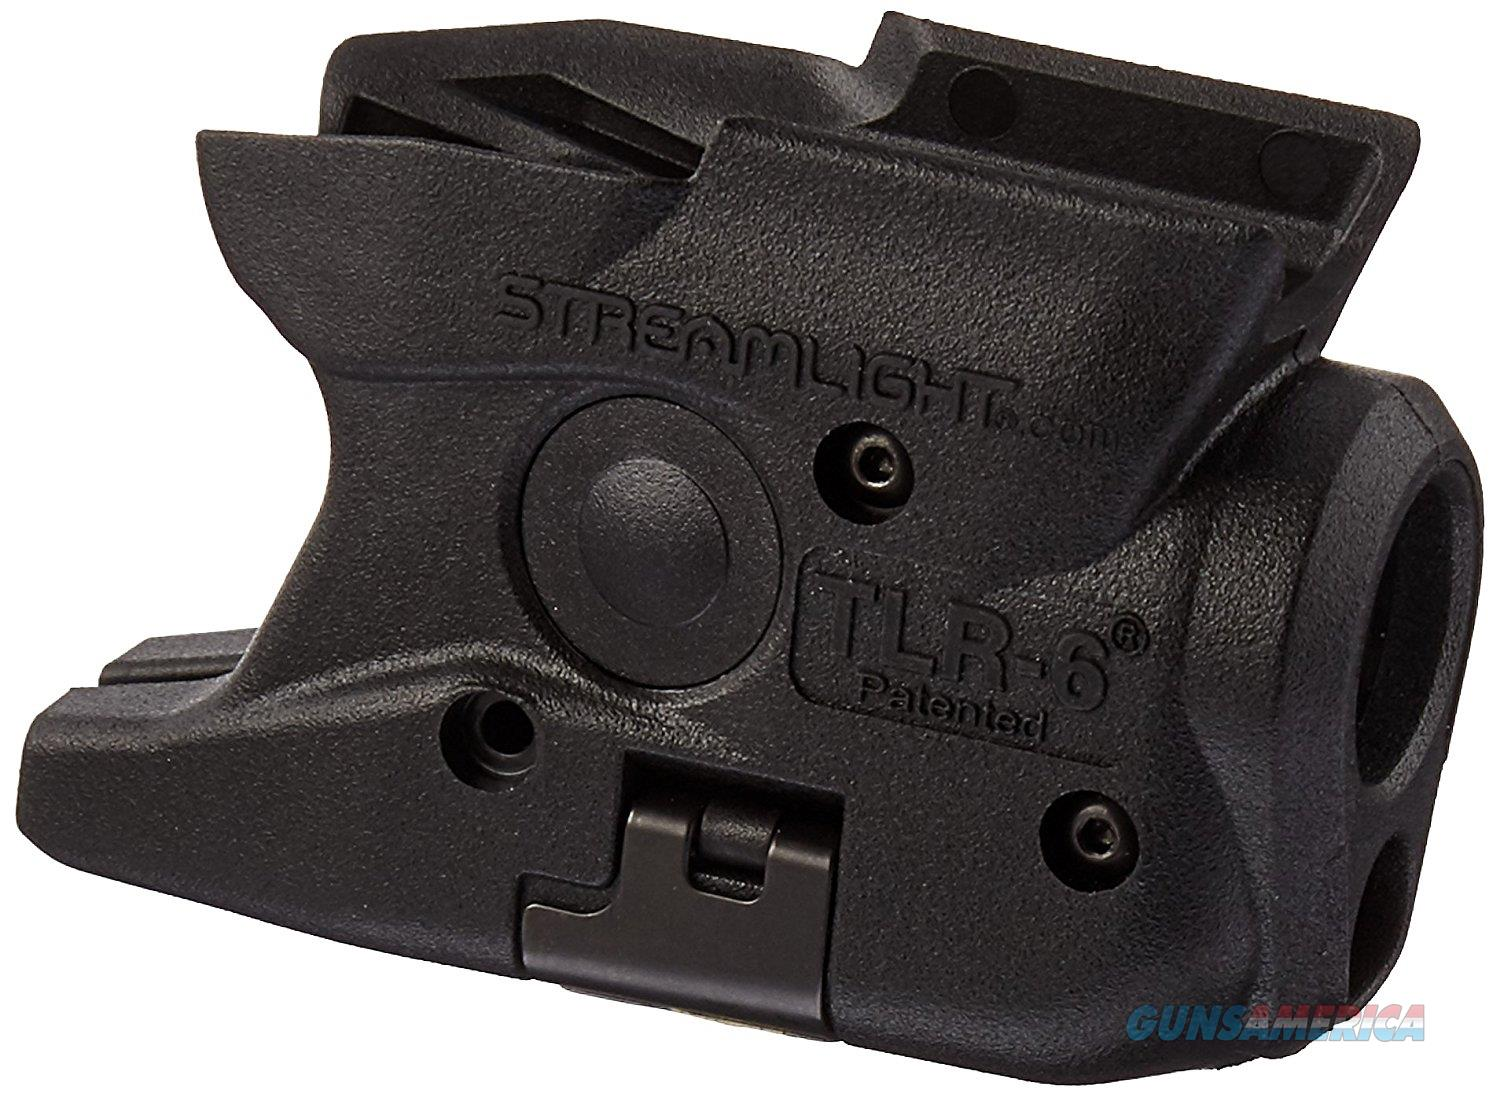 Streamlight TLR-6 Laser and Light Combo  Non-Guns > Lights > Tactical